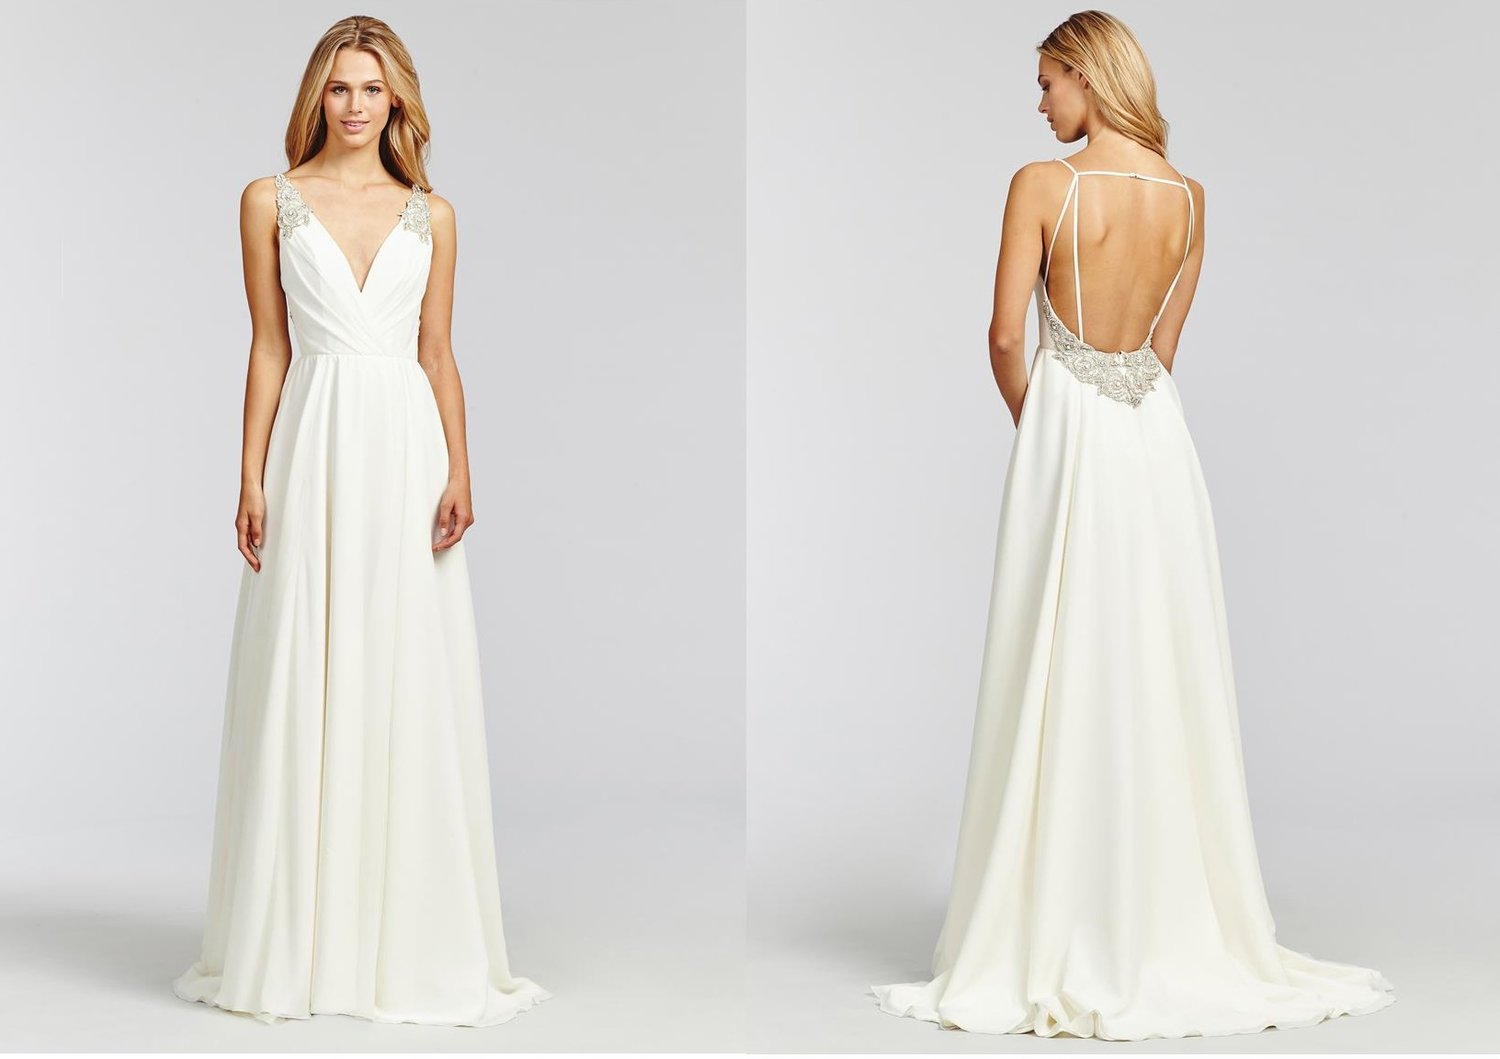 Blush by Hayley Paige Dazhi Bridal Gown / Style 1651